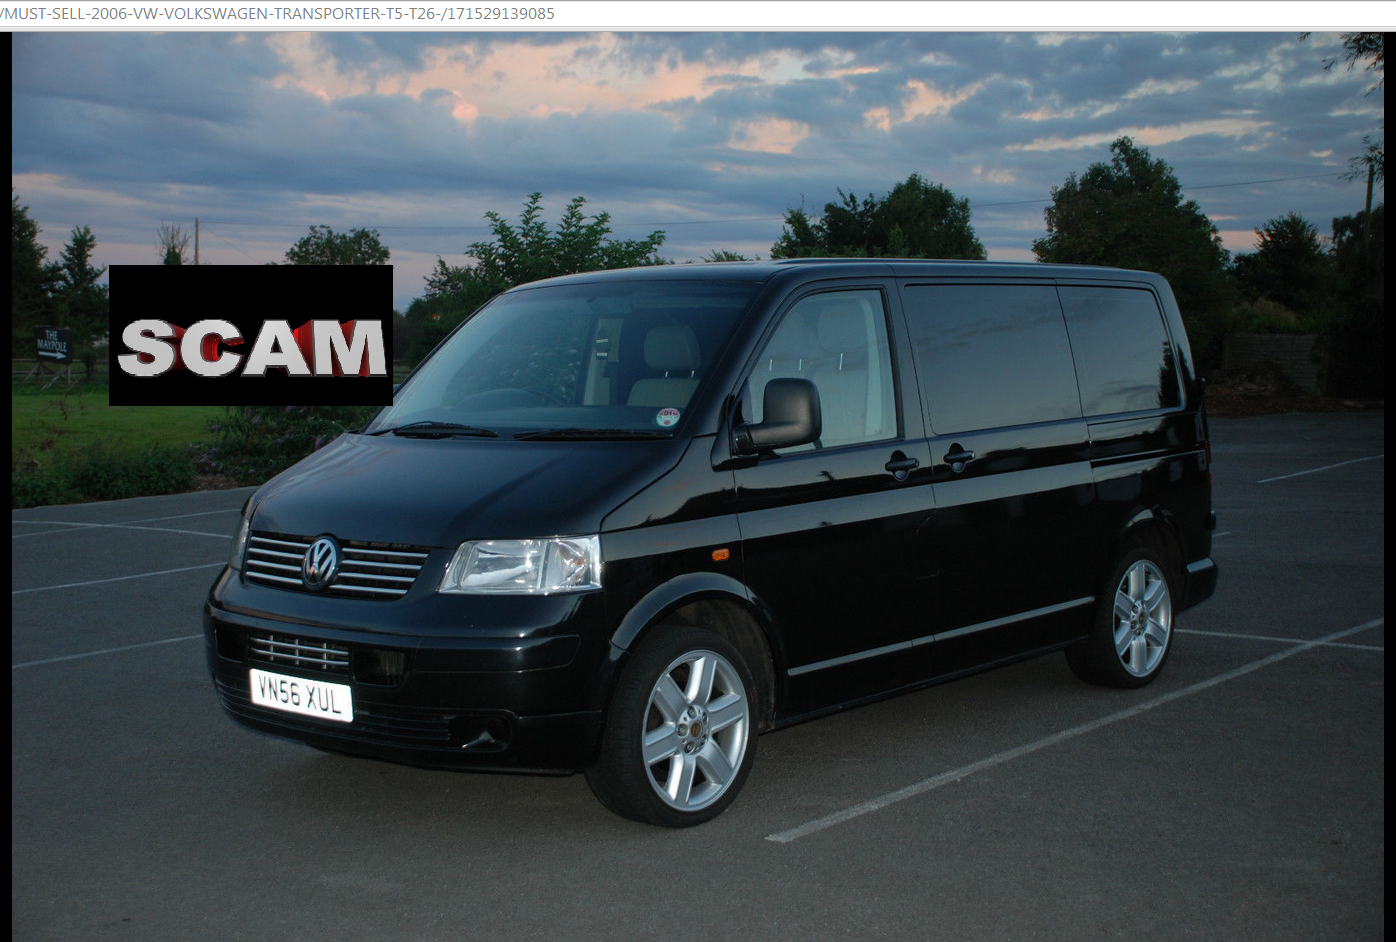 scam 2006 vw volkswagen transporter t5 t26 vn56xul ebay fraud vn56 xul 05 nov 1. Black Bedroom Furniture Sets. Home Design Ideas